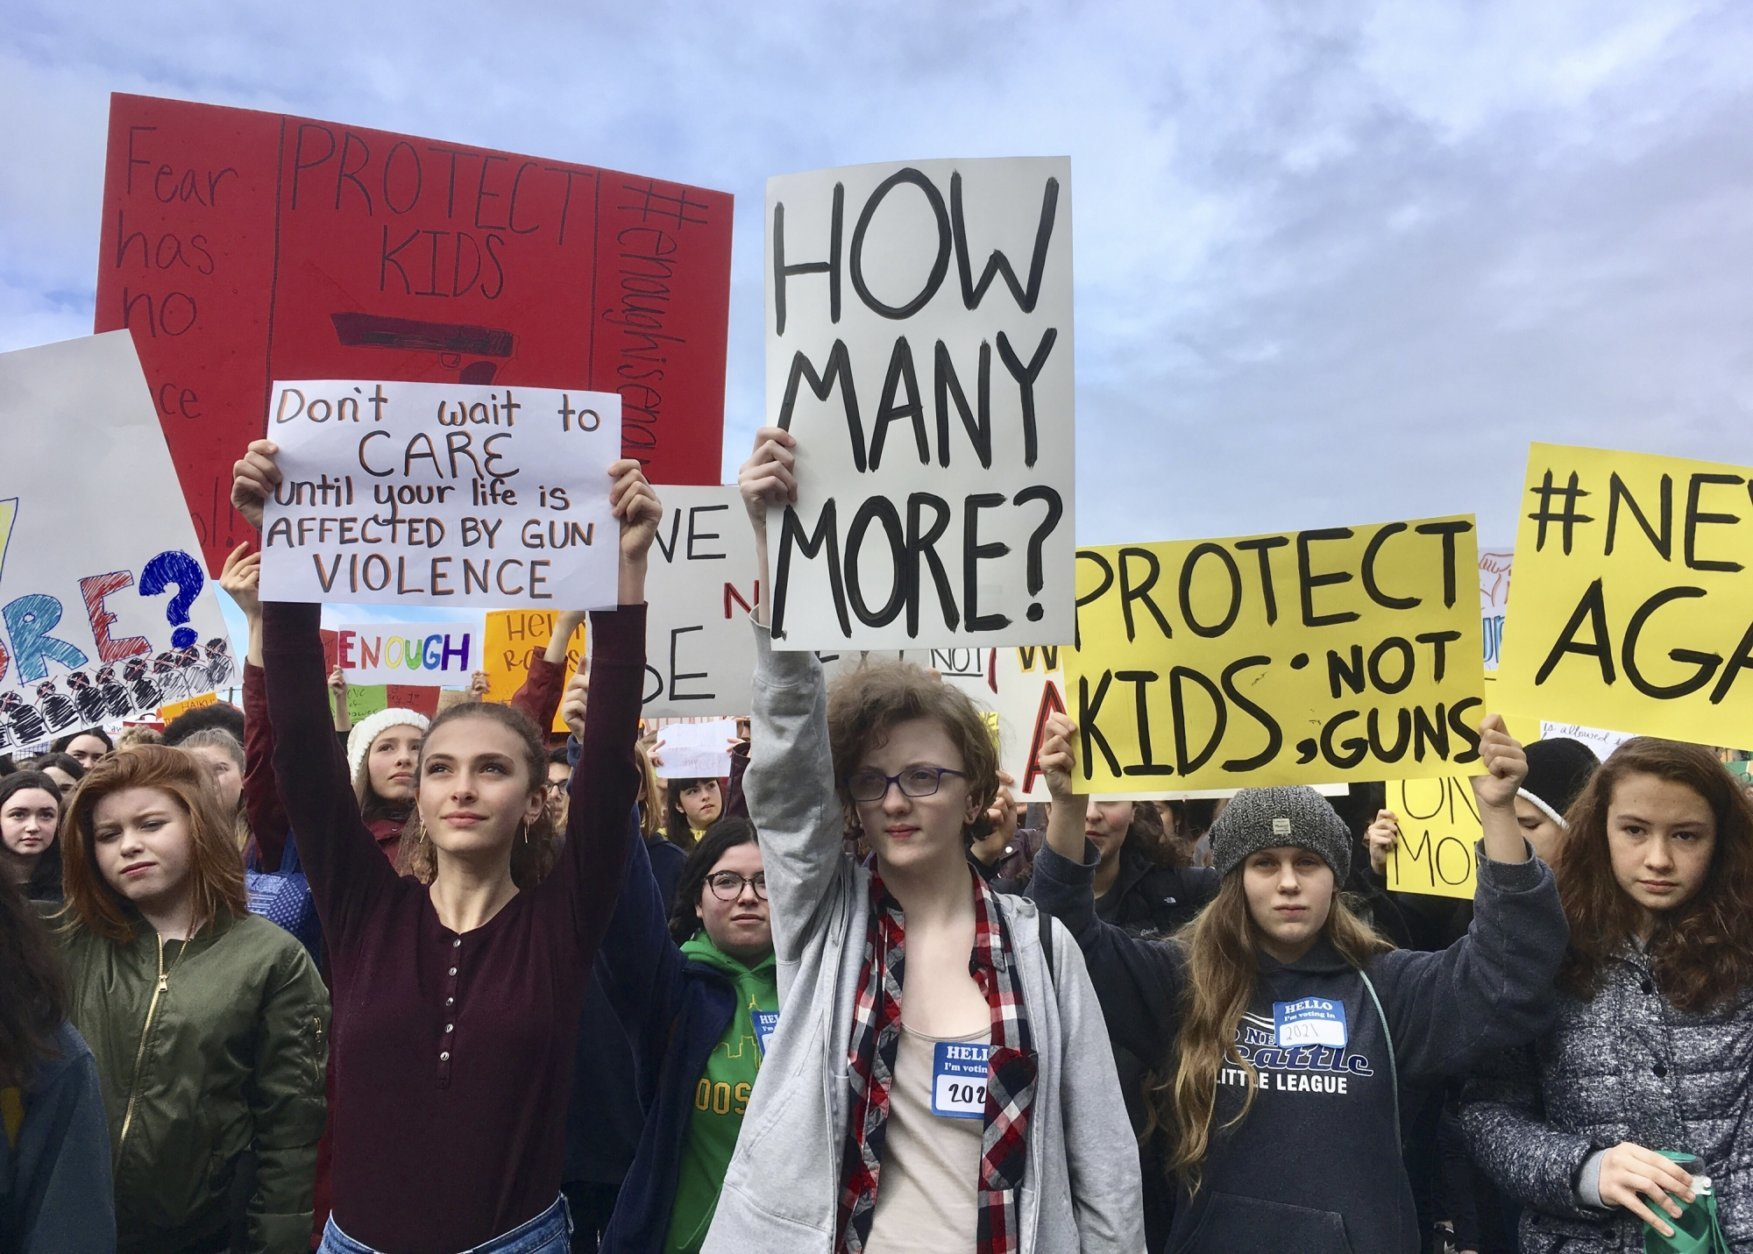 FILE - Students at Roosevelt High School take part in a protest against gun violence Wednesday, March 14, 2018, in Seattle. Politicians in Washington state are joining students who walked out of class to protest against gun violence. It was part of a nationwide school walkout that calls for stricter gun laws following the massacre of 17 people at a Florida high school. (AP Photo/Manuel Valdes)